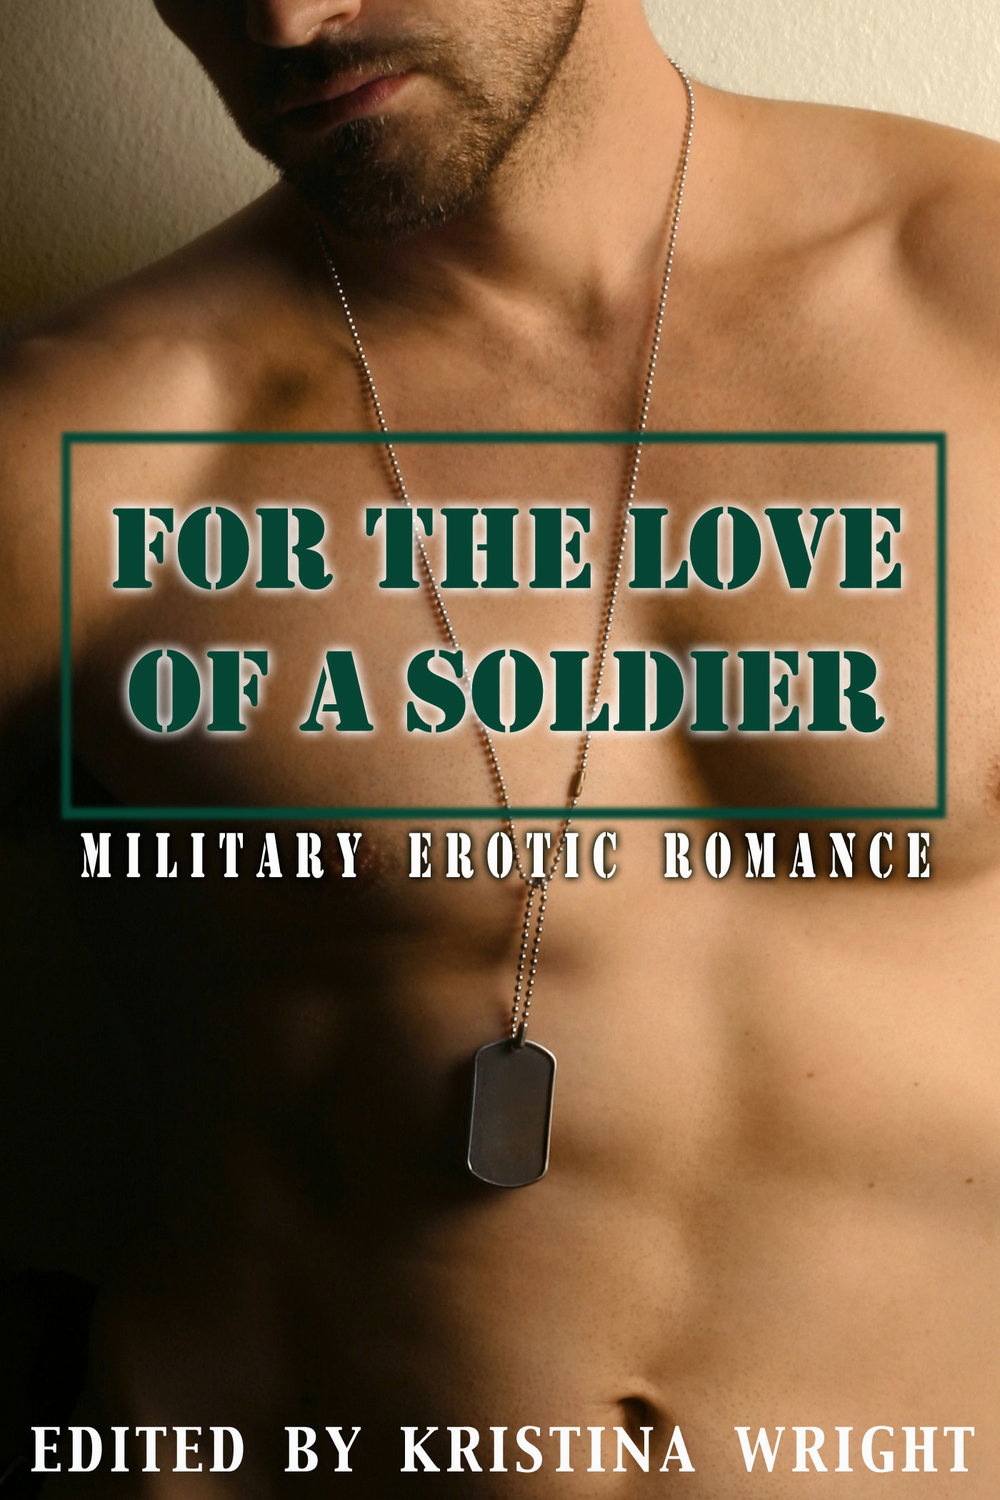 love-of-a-soldier-1400px.jpg